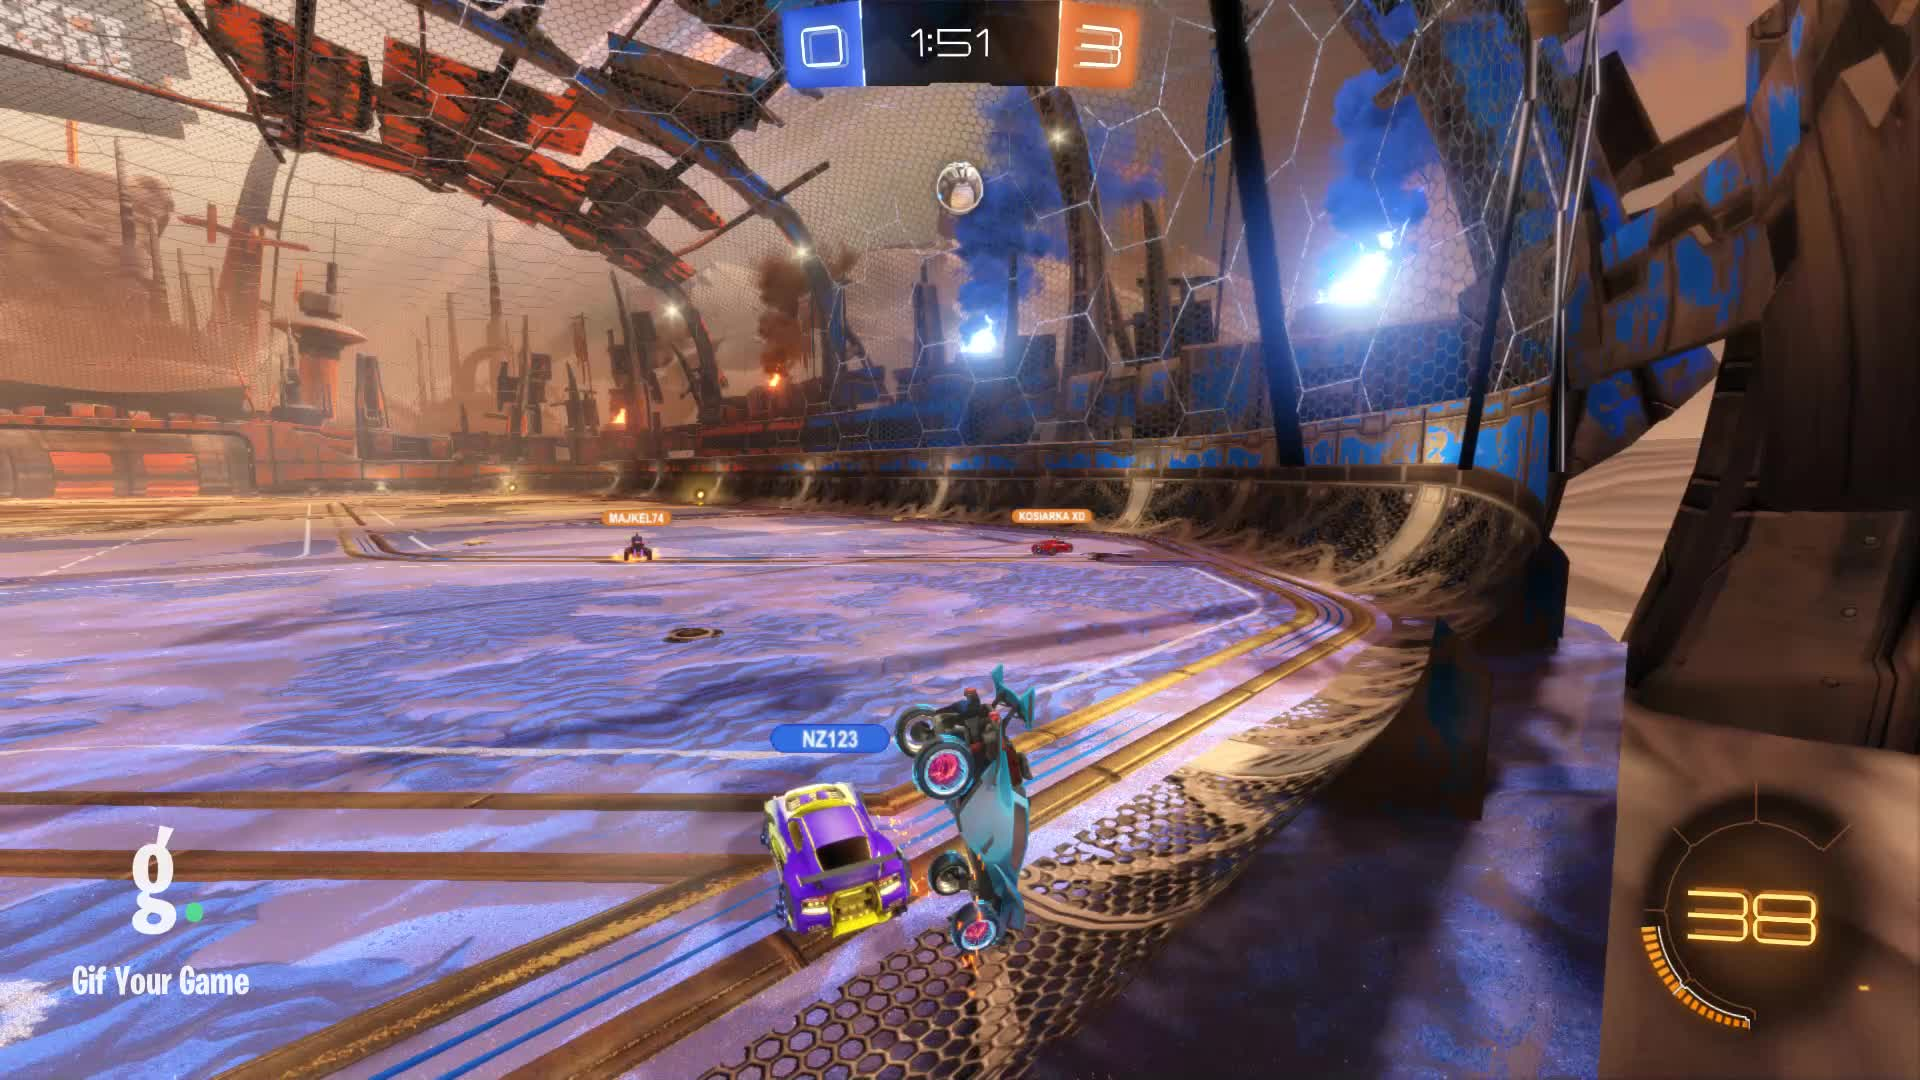 Gif Your Game, GifYourGame, Goal, Rocket League, RocketLeague, Timper [NL], Goal 4: Timper [NL] GIFs